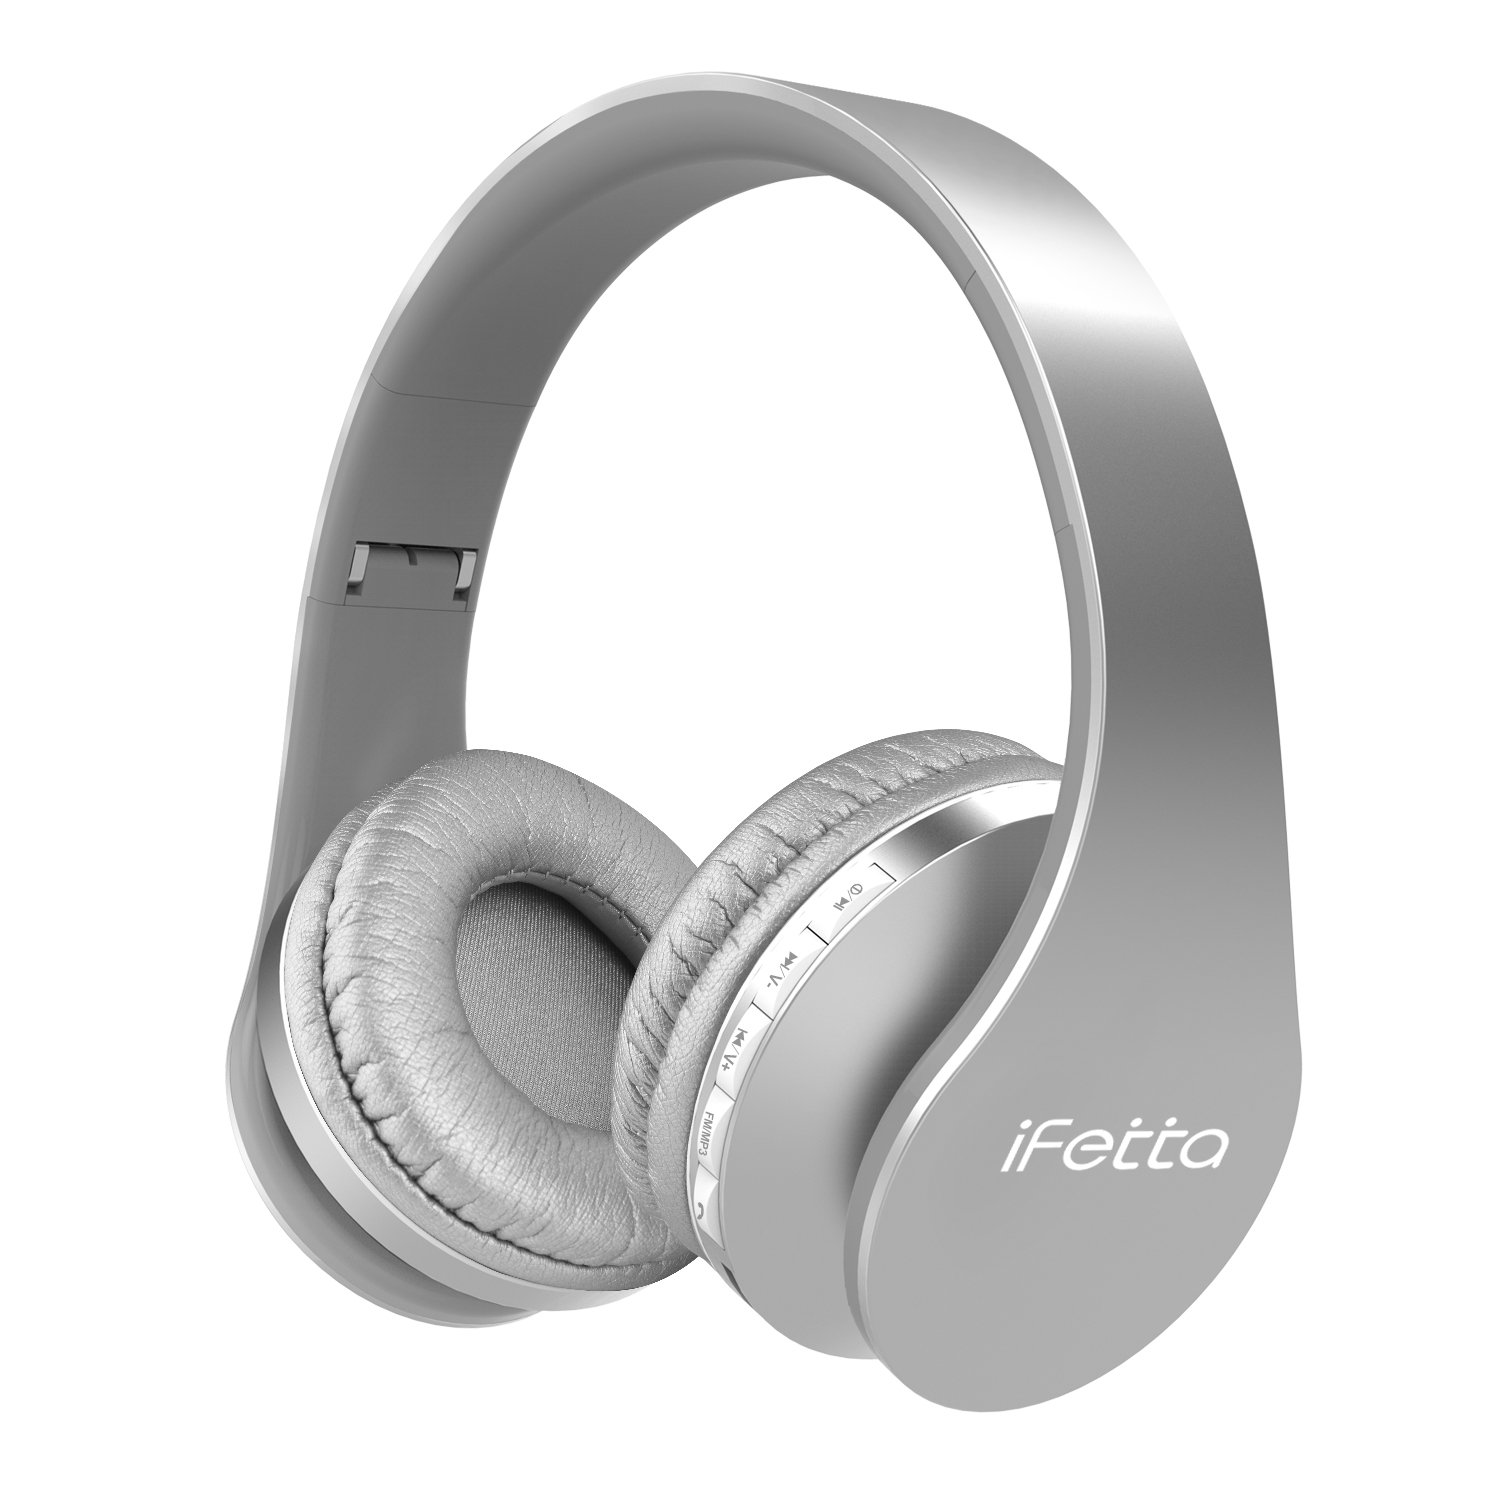 Ifecco Cuffie Senza Fili Bluetooth, Cuffie Bluetooth Over Ear Cuffie Wireless, Cuffie Stereo Bluetooth Compatibile con Tutti gli Smartphone / Tablet / Laptop Comuni